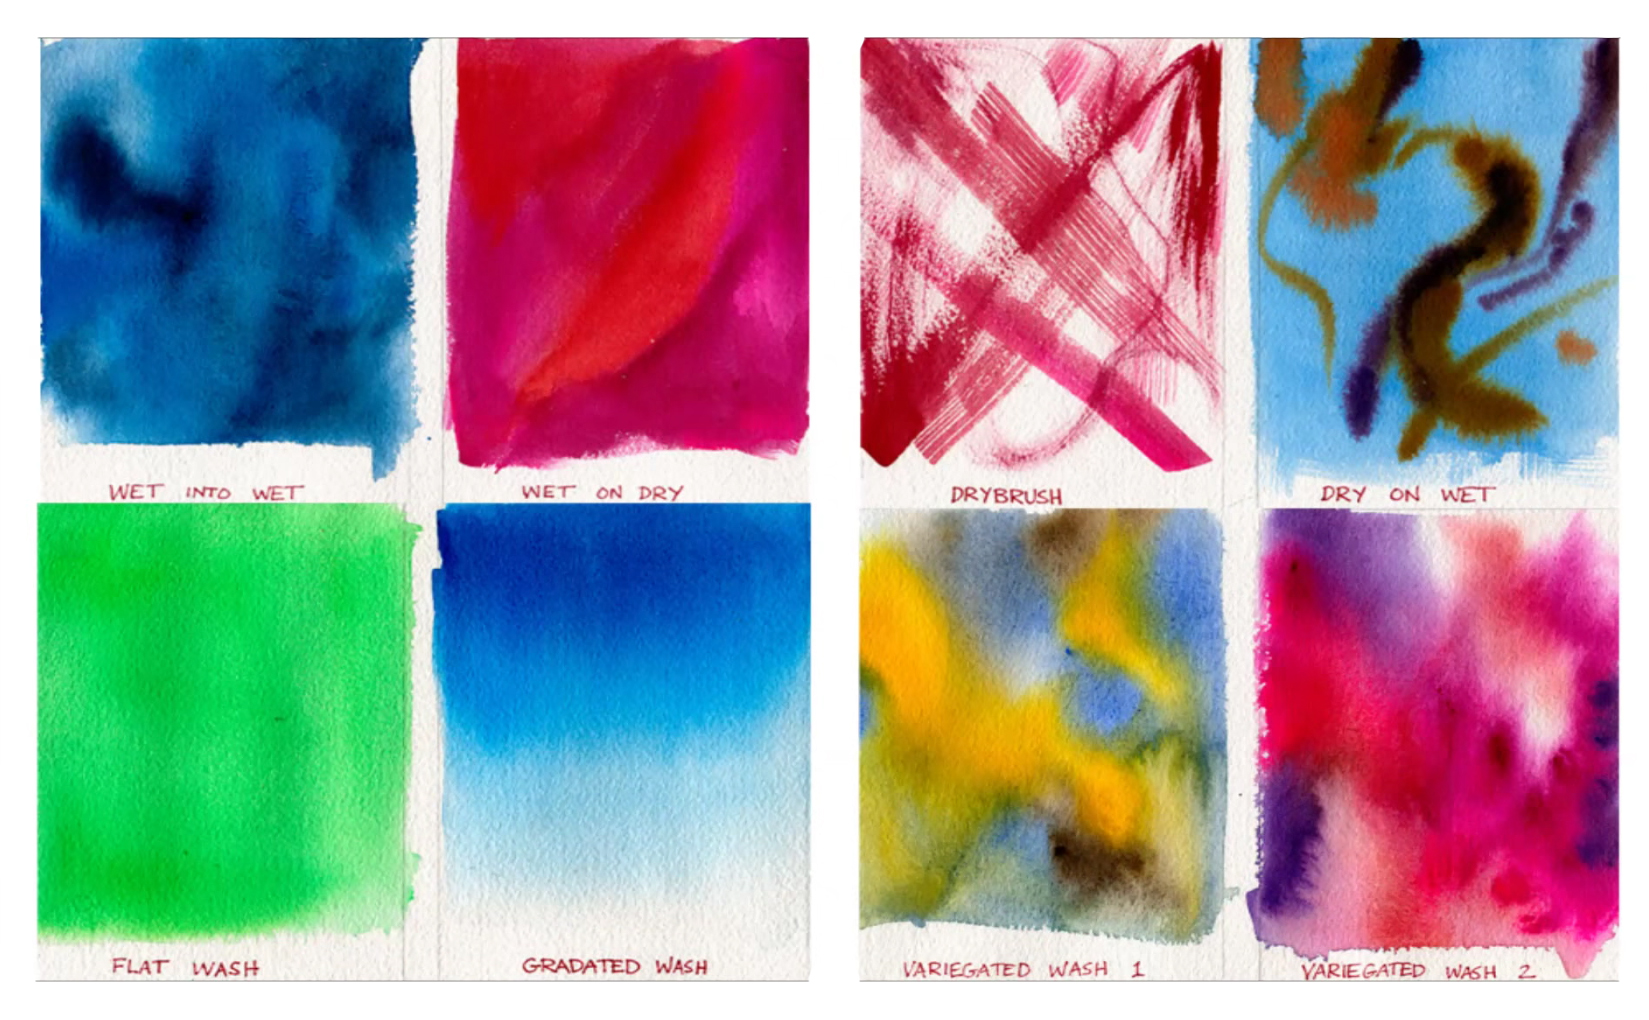 7-watercolor-techniques-featured-image.jpg